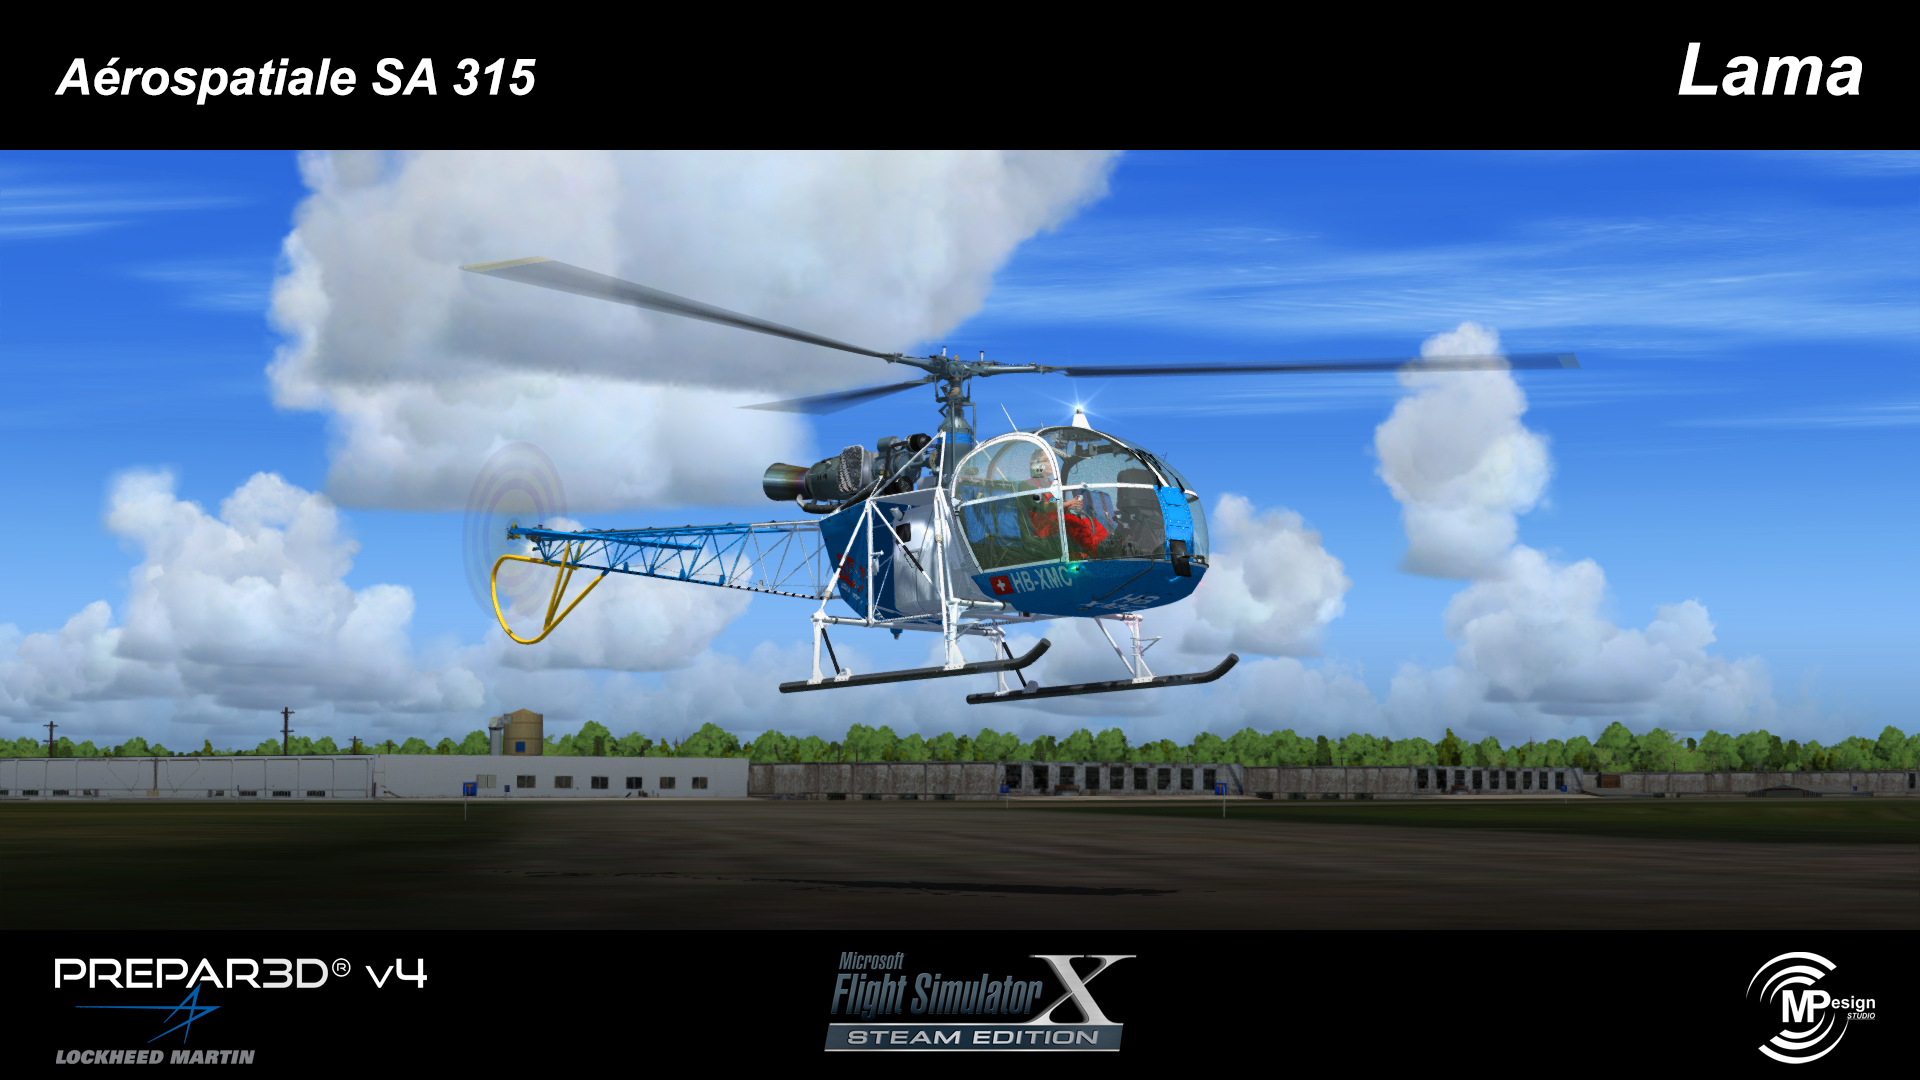 MP DESIGN STUDIO - AEROSPATIALE SA315 LAMA P3D